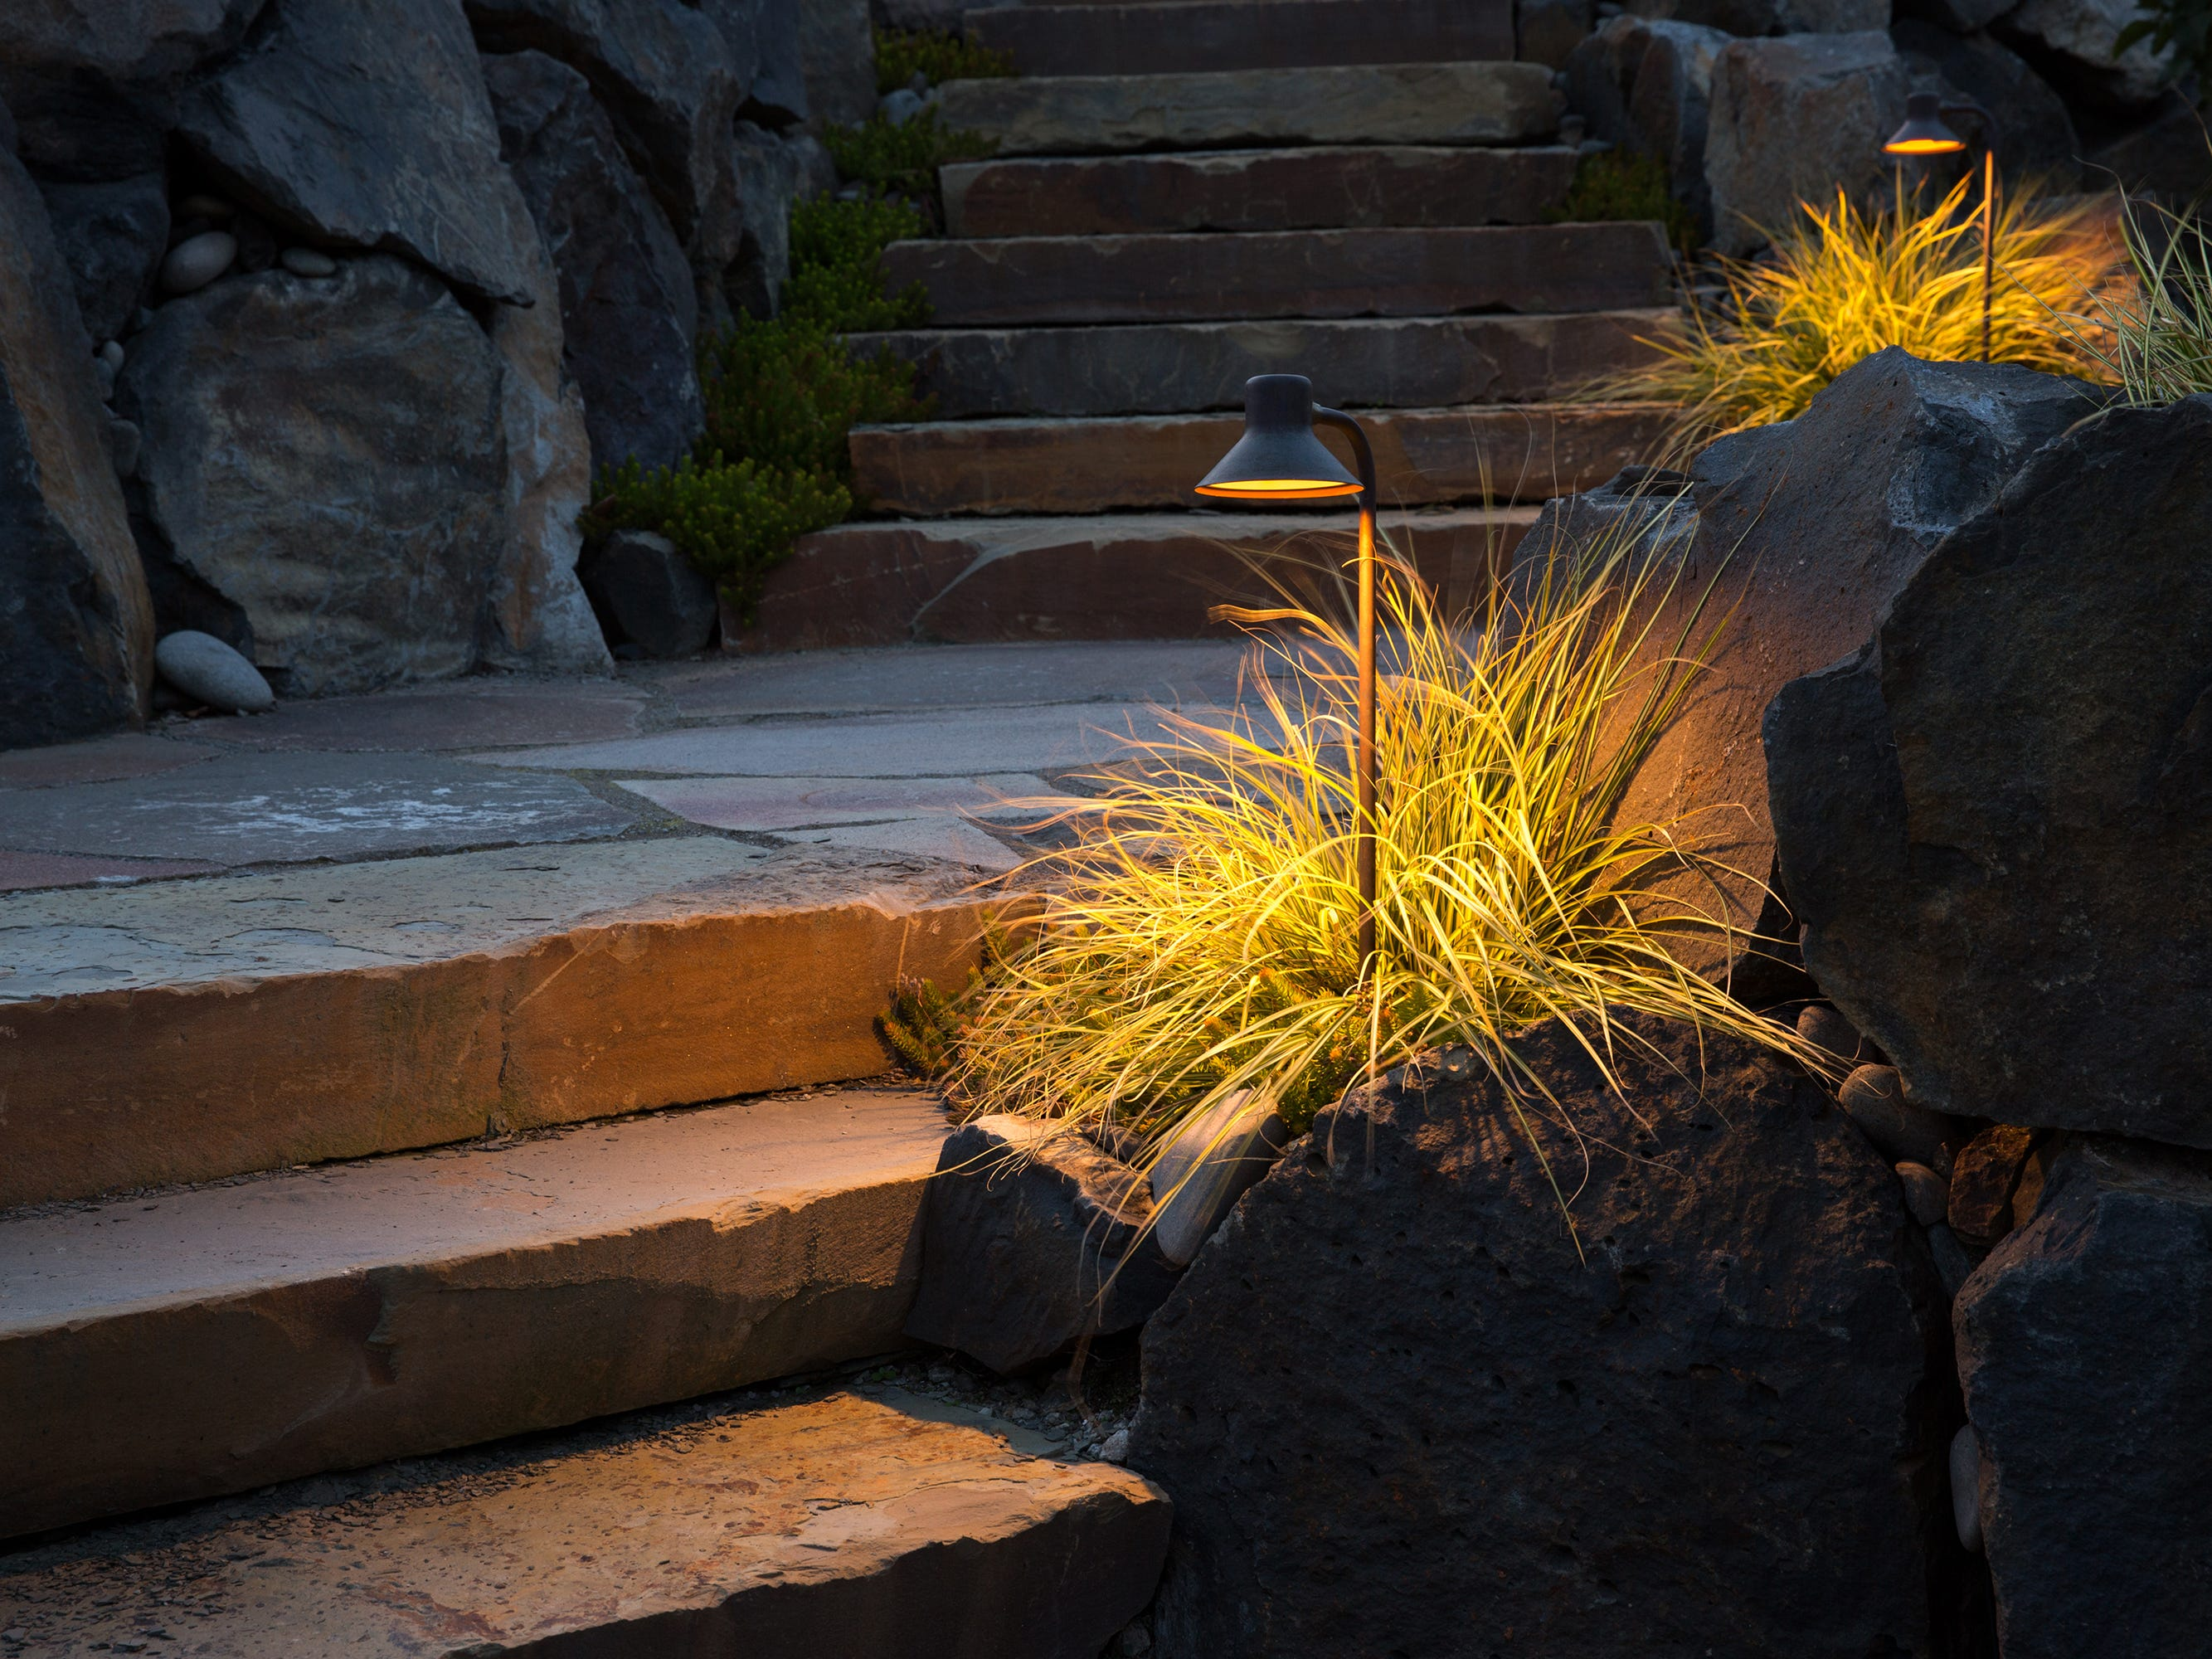 A two-level stone stairway is accented with path lights that keep the area safe, but also highlight ornamental grasses nearby.